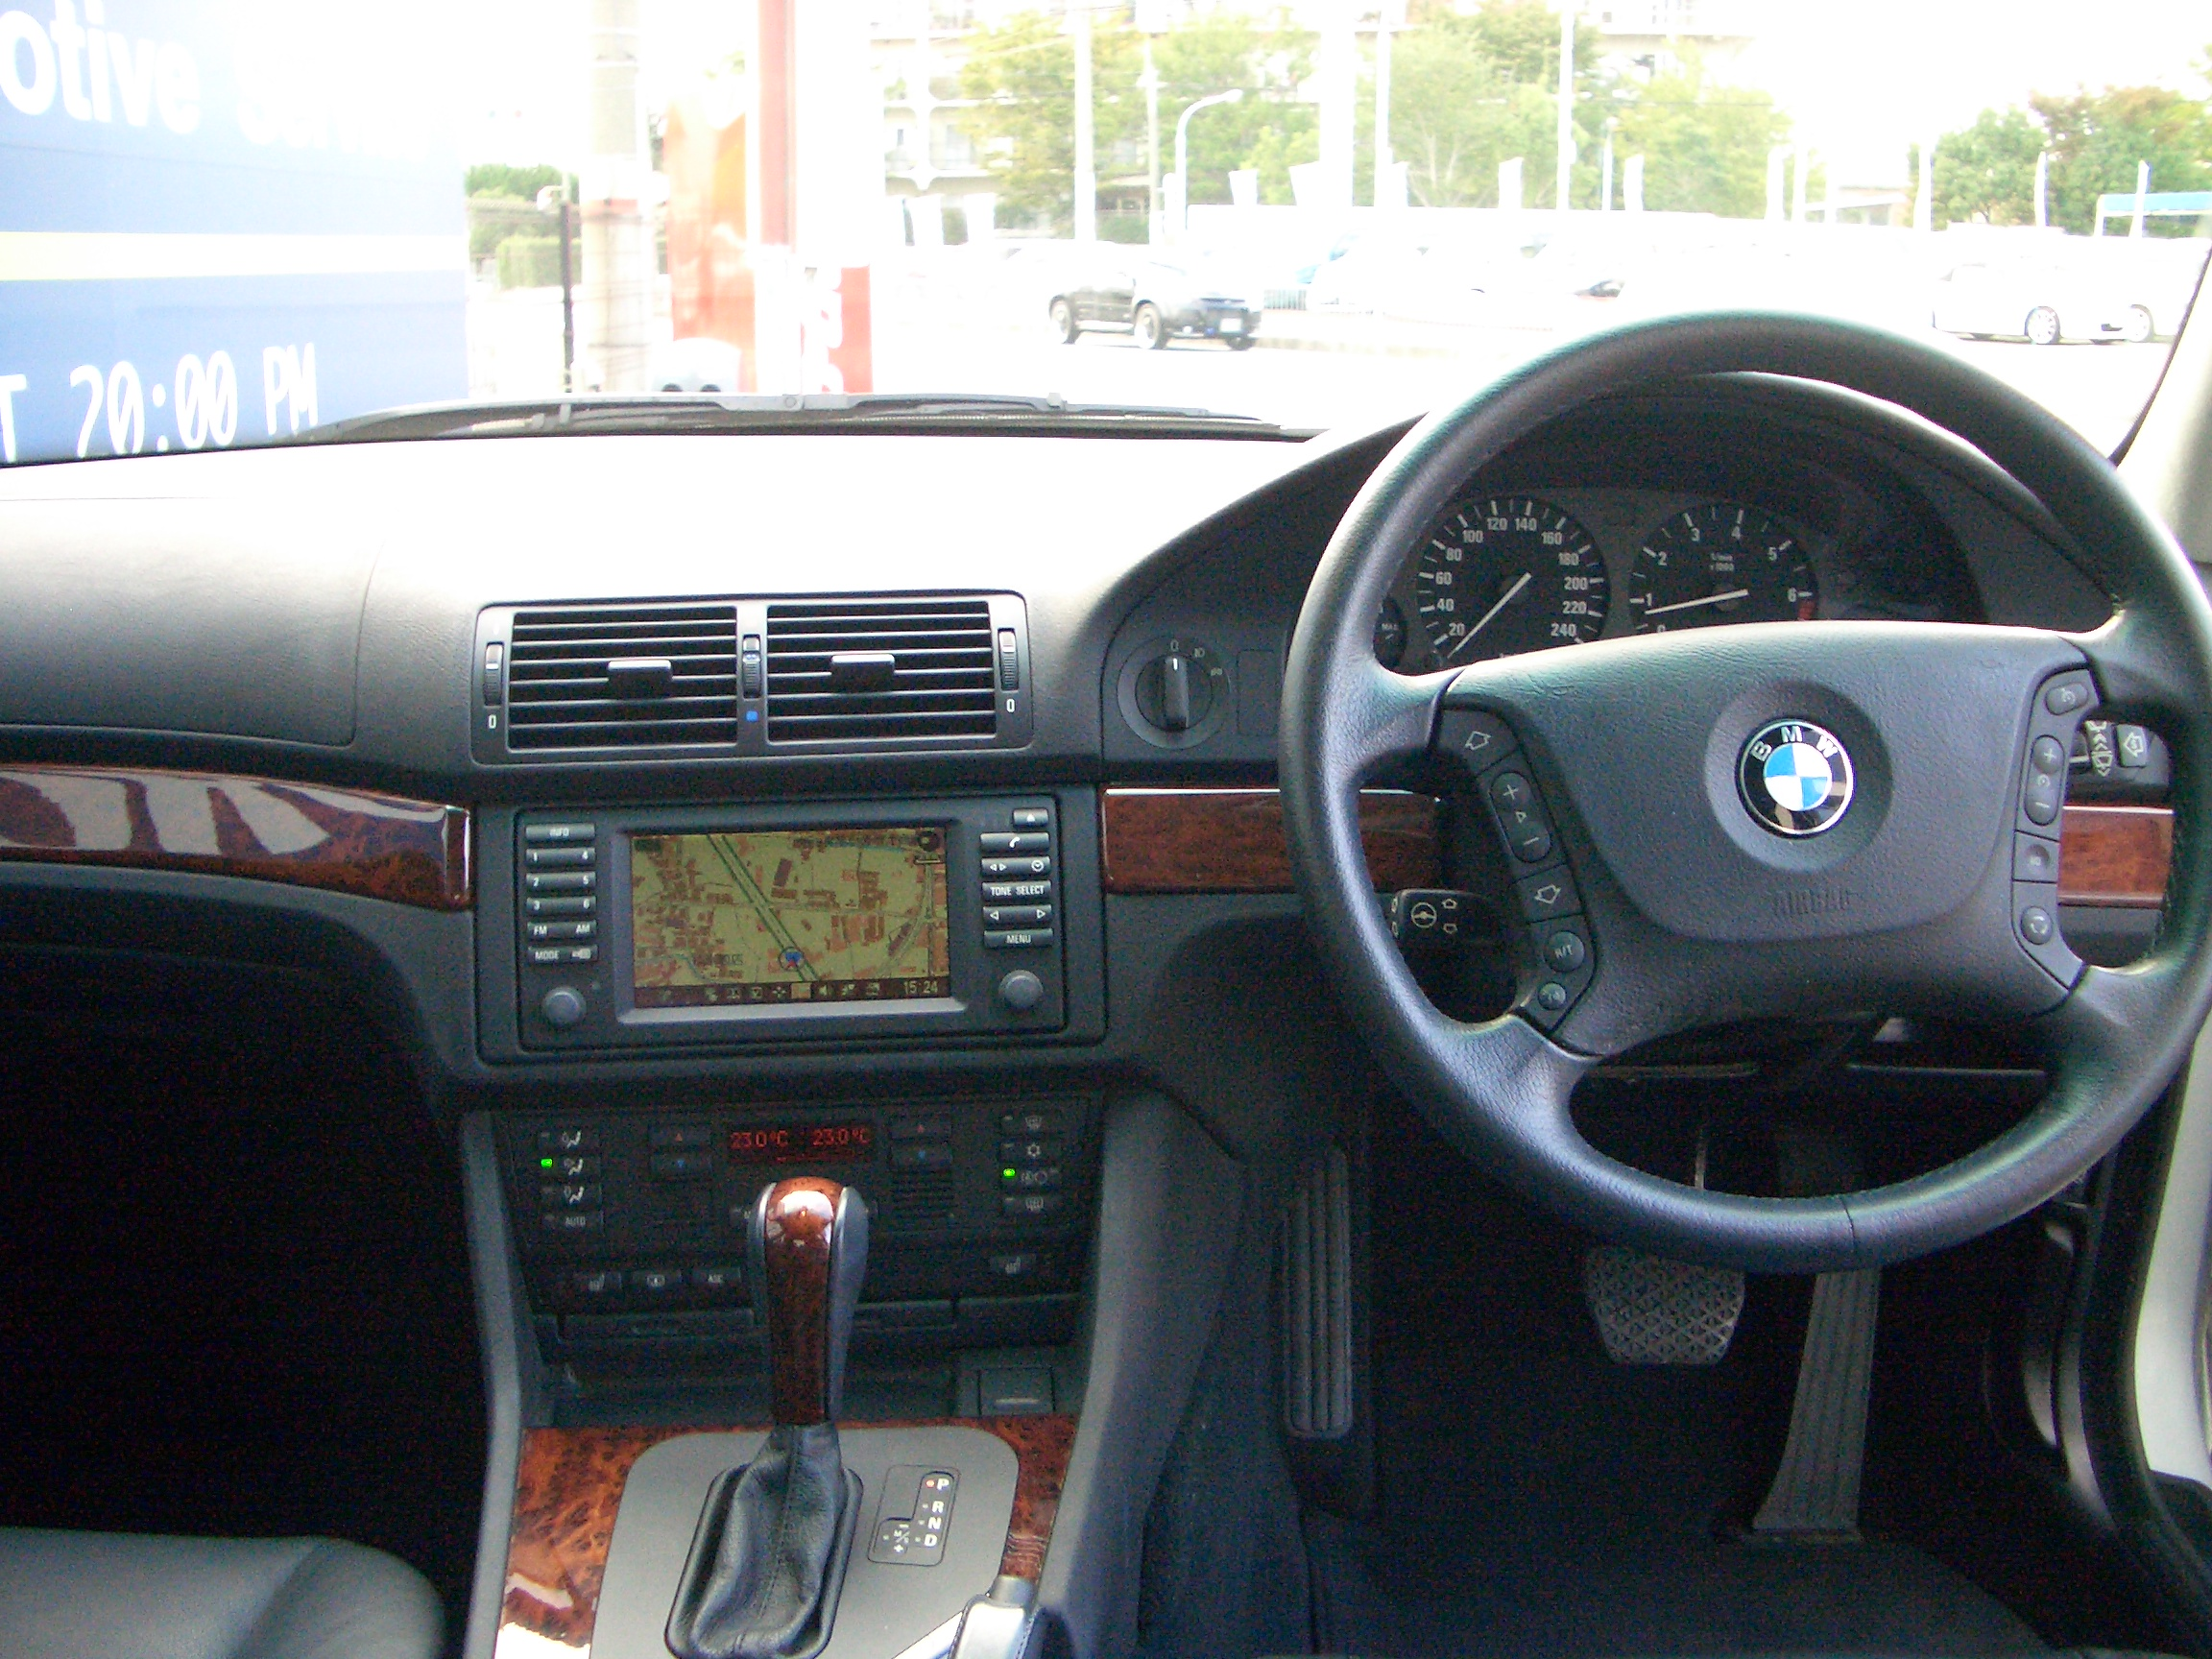 BMW <font size=4 color=red face=Impact>SOLD OUT</font> 530i